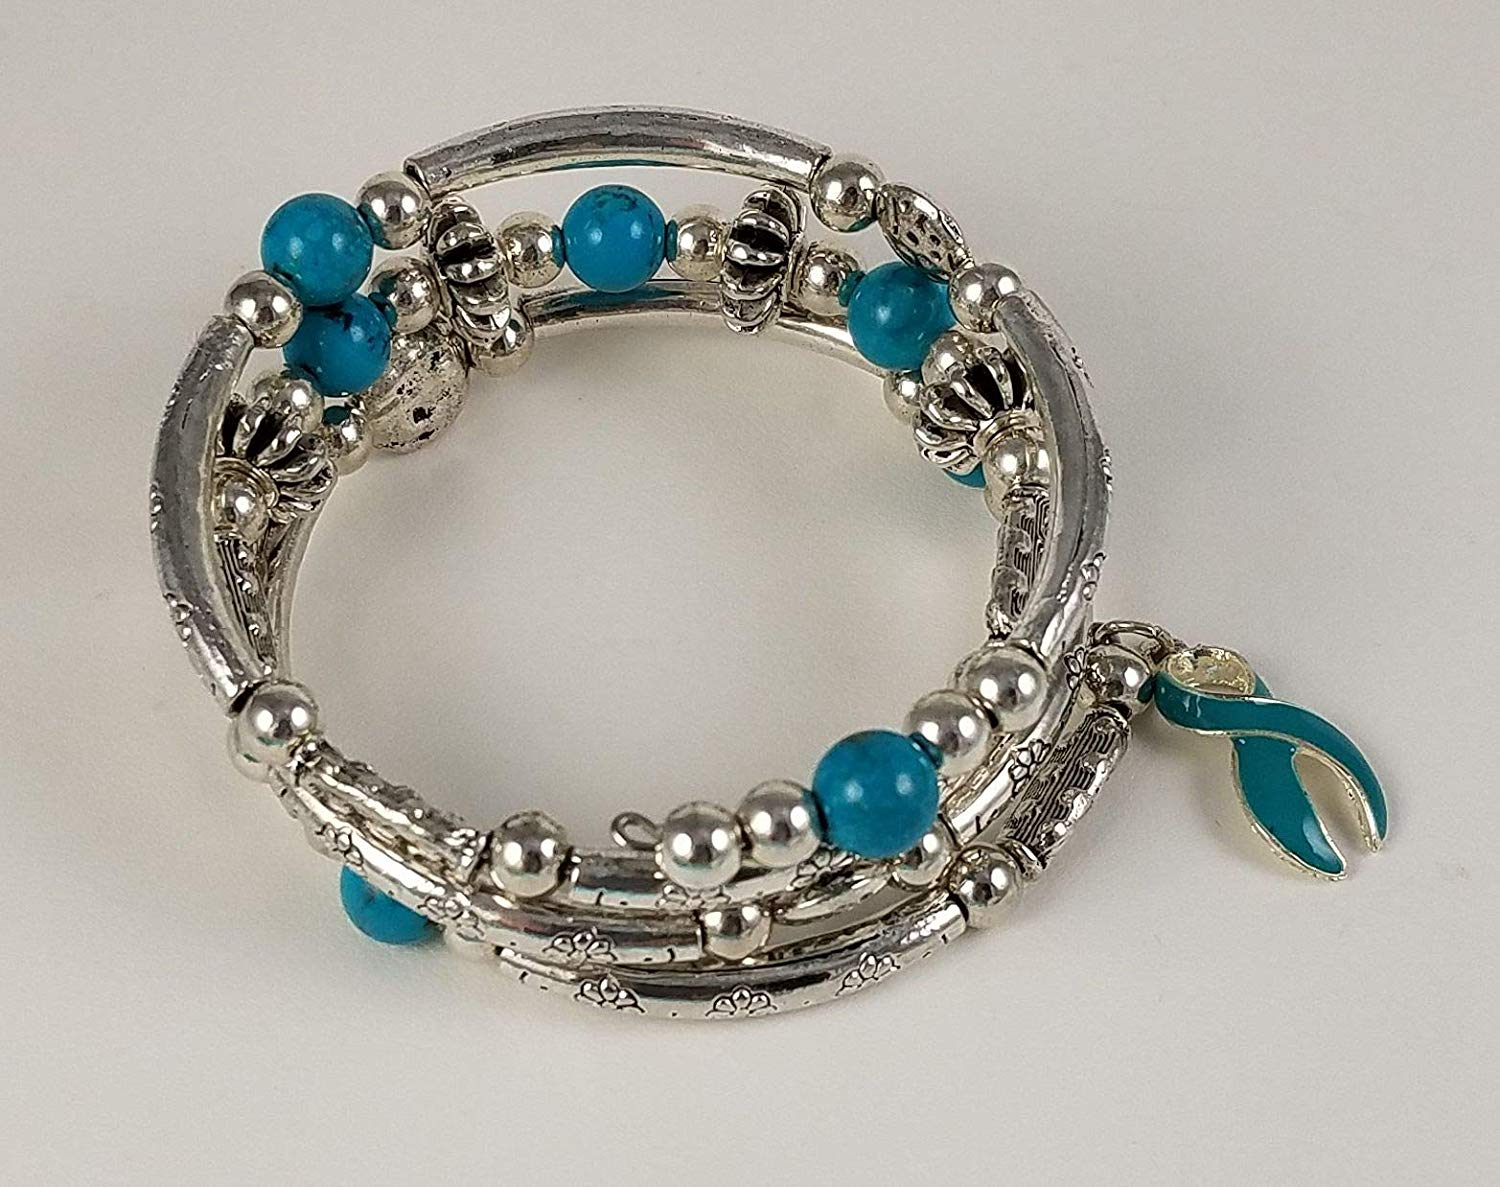 Turquoise Triple Spiral Coil Wrap Bracelet - With Pewter Designer Beads -Ovarian Cancer Awareness - Great for Everyday!